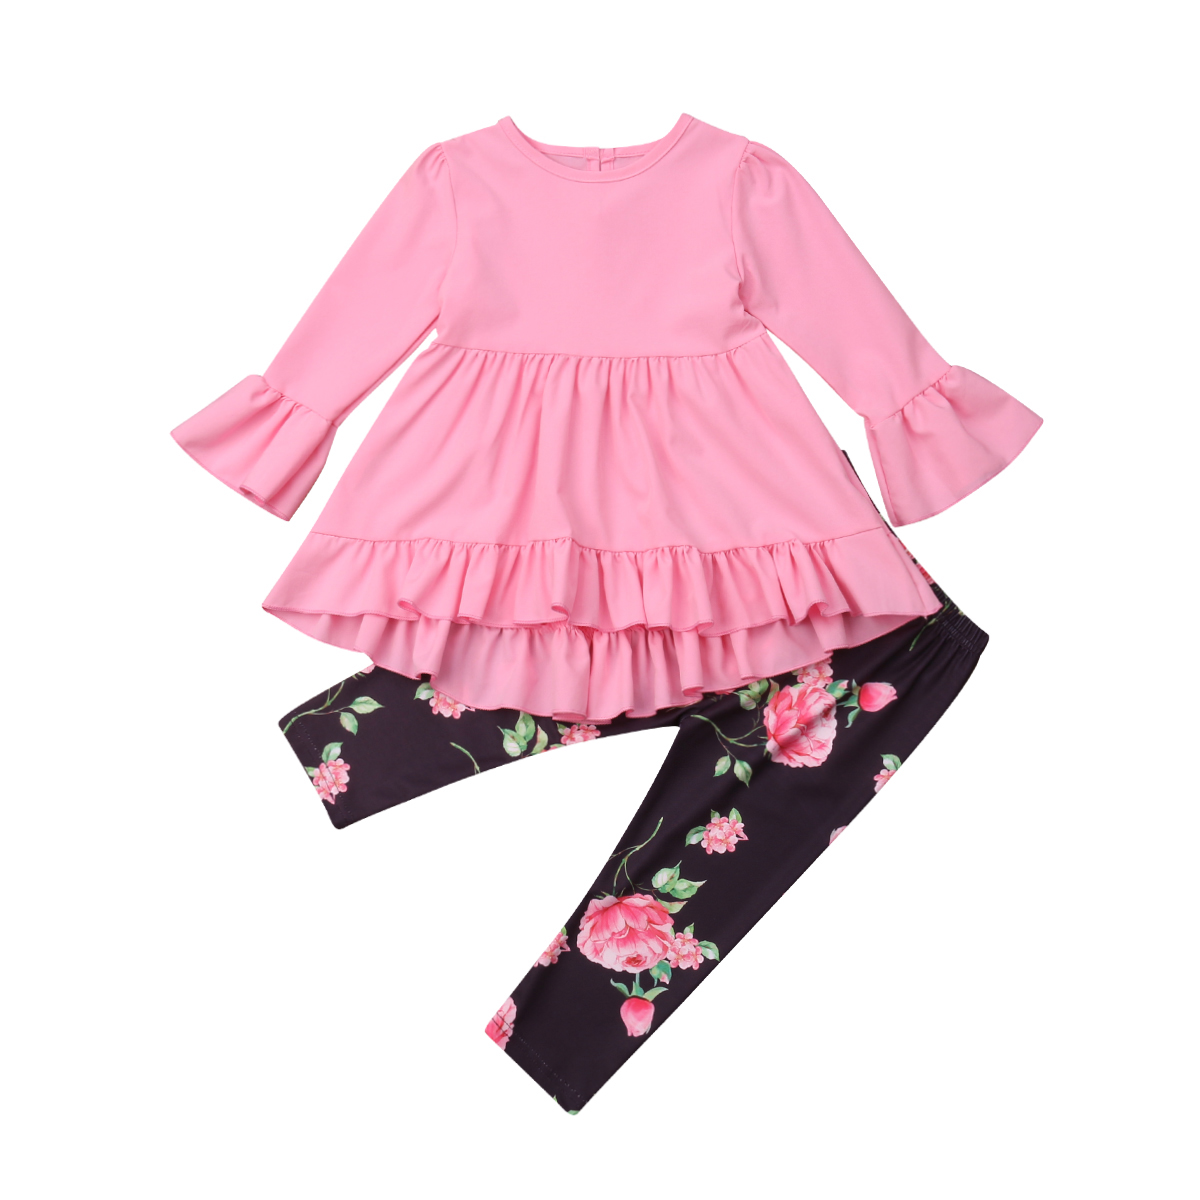 Toddler Kid Baby Girl Ruffle Clothes Tops Flare Long Sleeve High Waist Dress Floral Leggings Pants Outfits Set